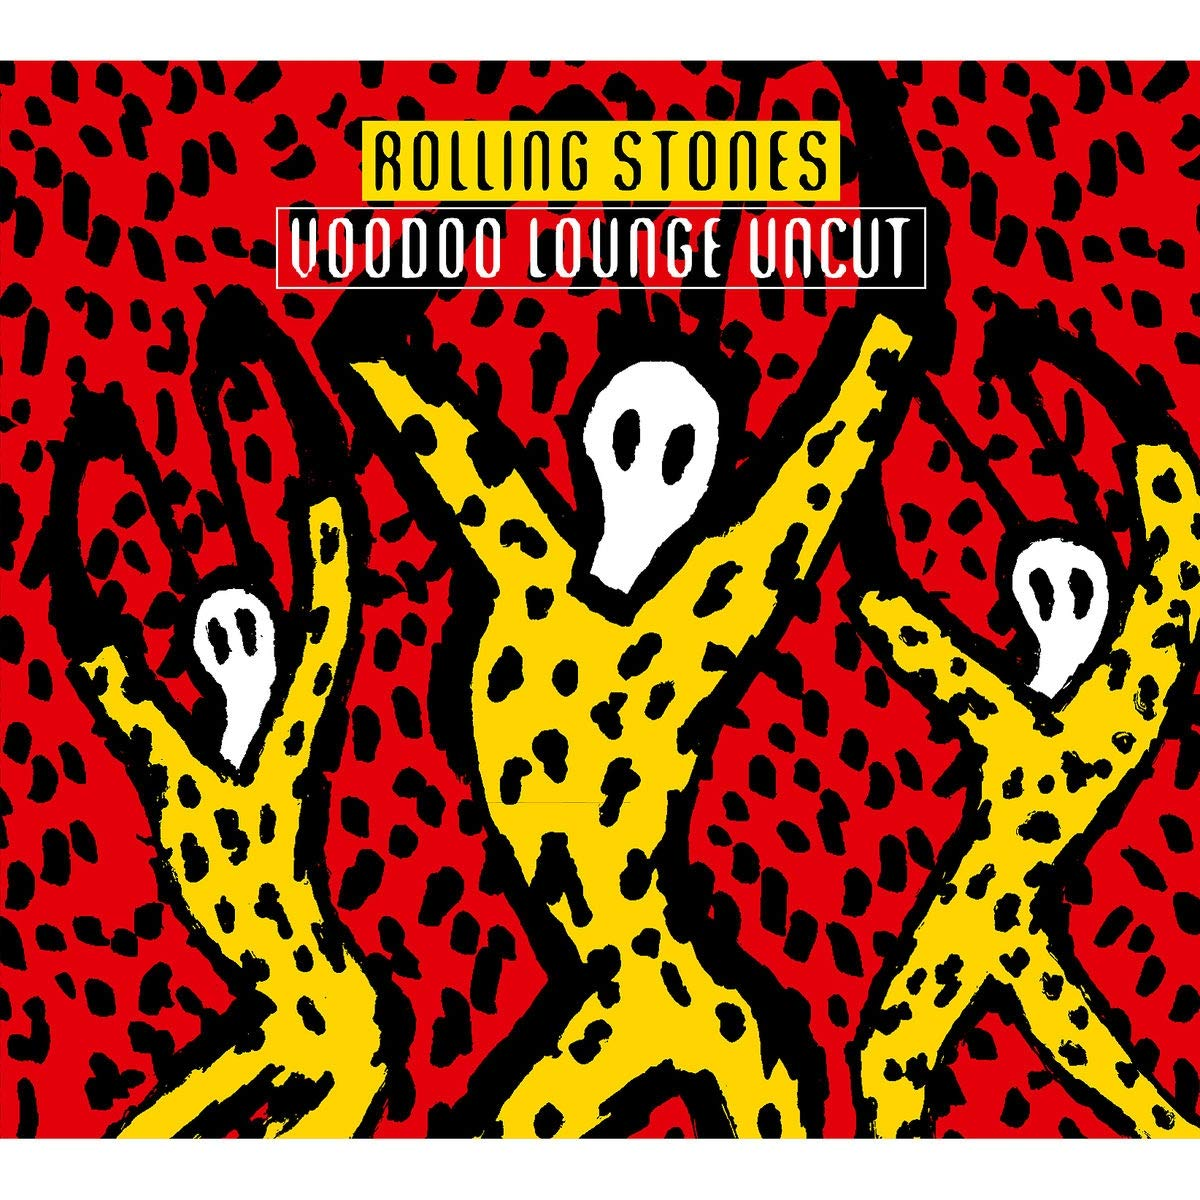 DVD : THE ROLLING STONES - Voodoo Lounge Uncut  (dvd + 2 Cds) (DVD)